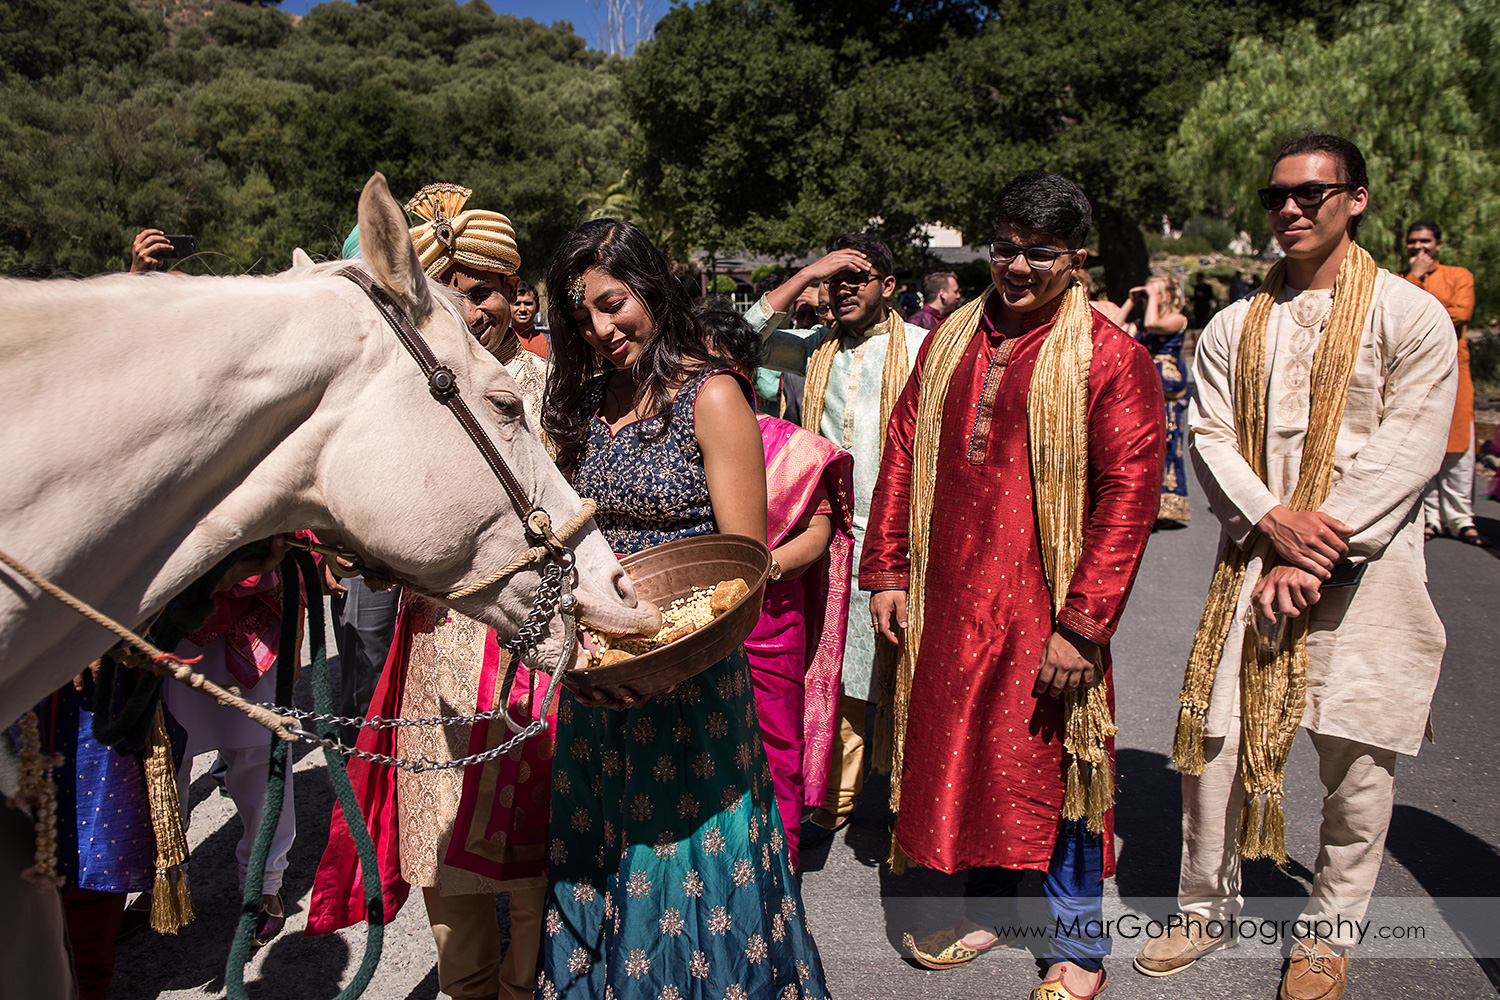 groom's sister feeding whithe horse during Indian wedding Baraat Swagat at Elliston Vineyards in Sunol